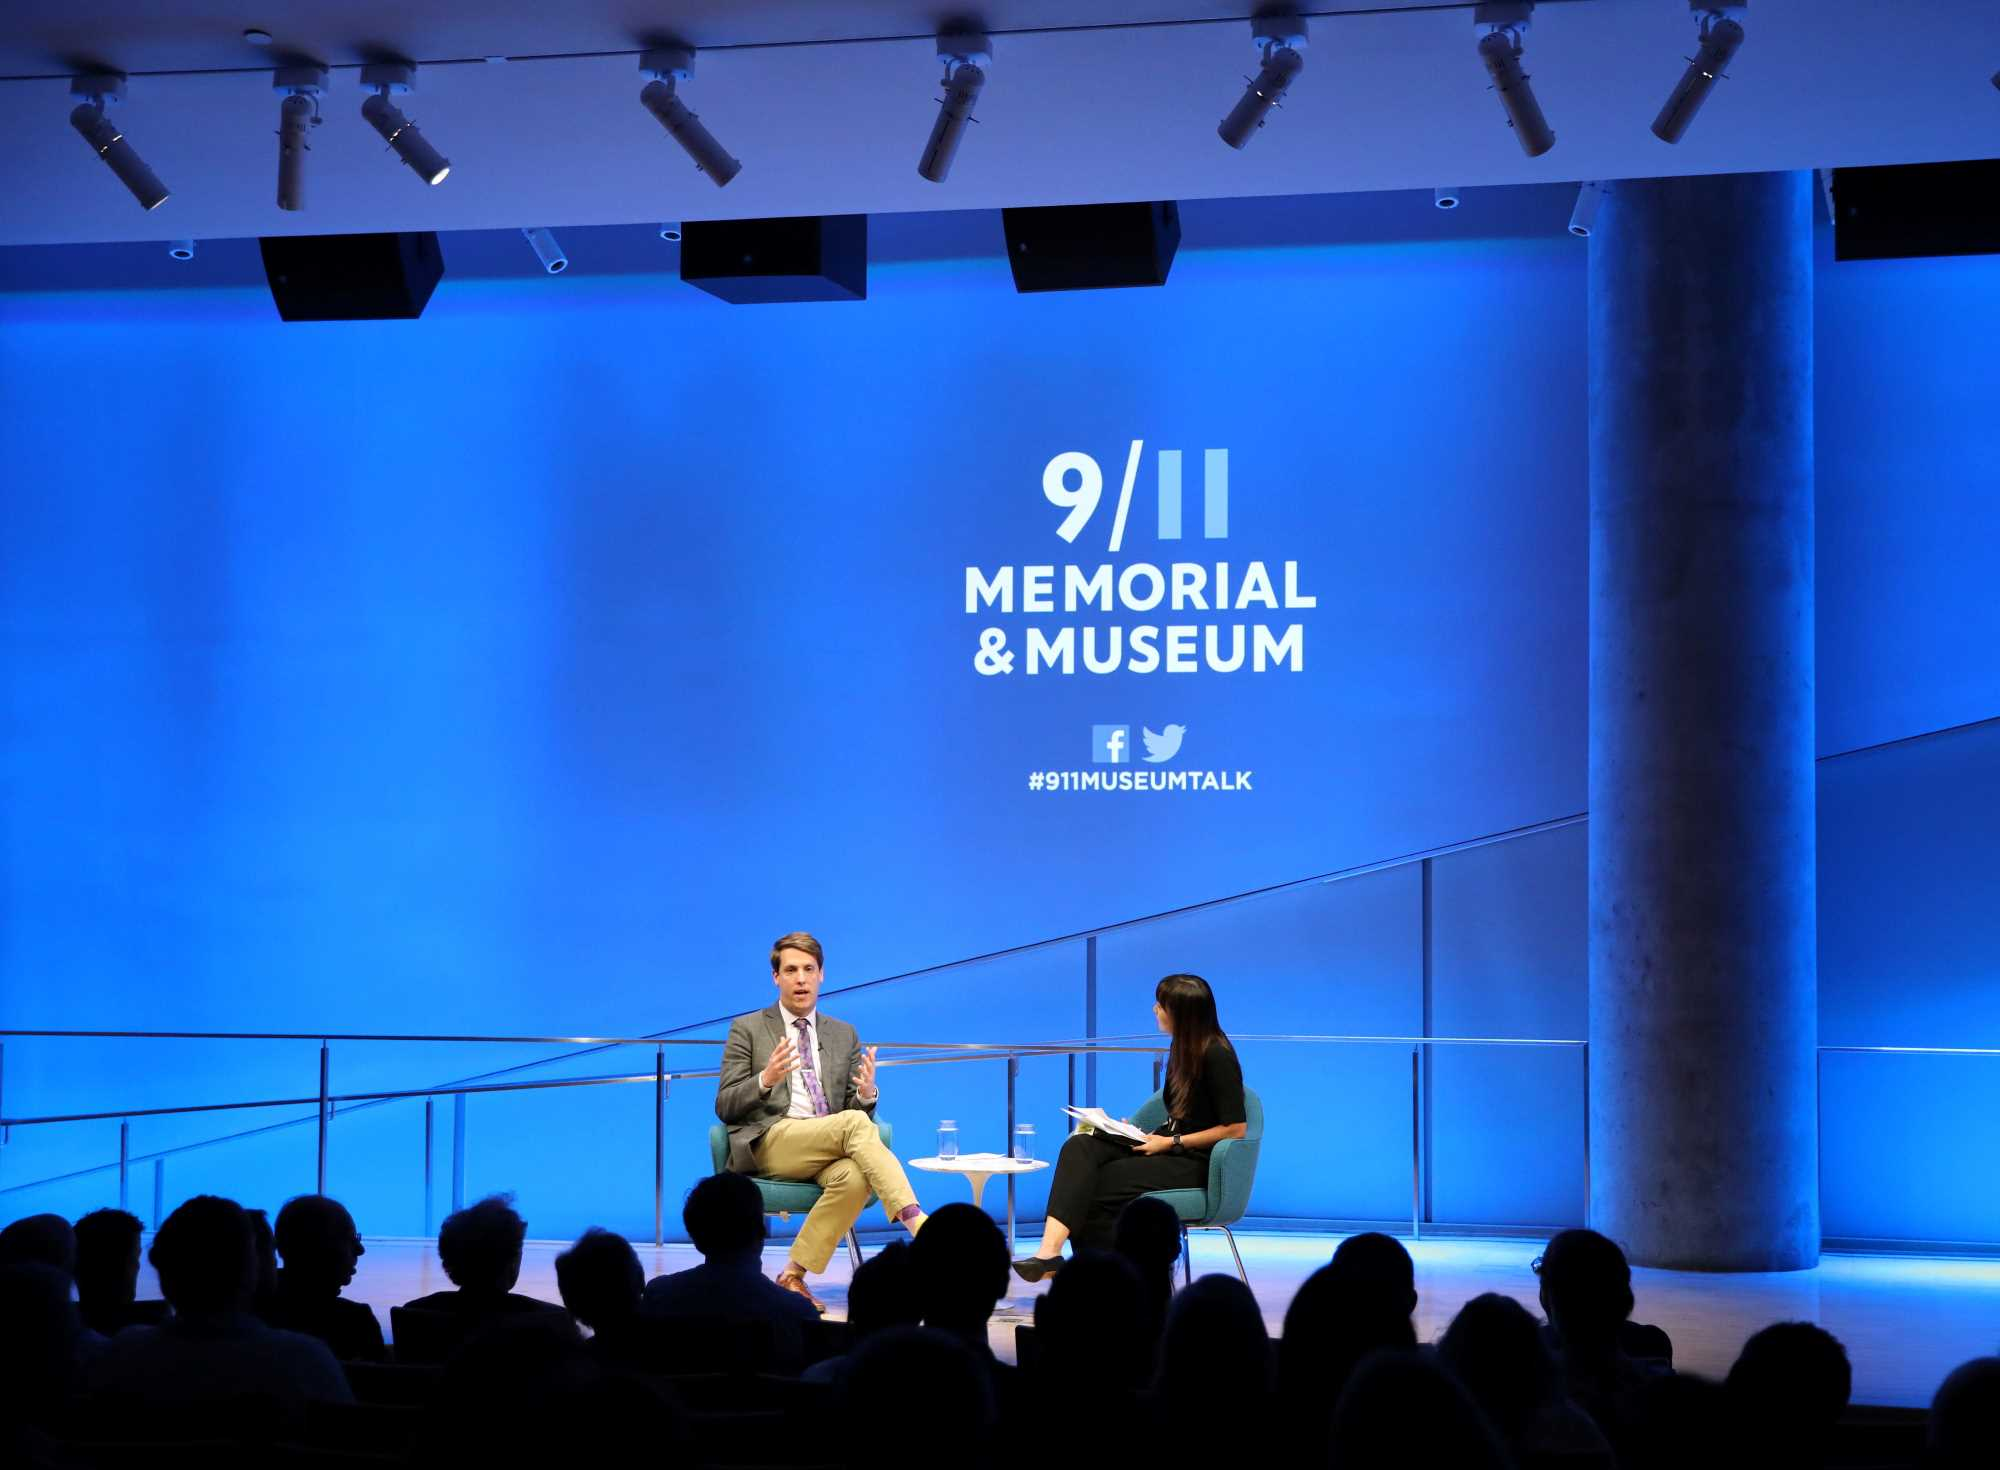 A wide shot of the Museum Auditorium shows journalist and historian Garrett Graff gesturing with both hands as he speaks onstage at the public program, Only Plane in the Sky. A woman sitting next to him who is hosting the event listens while holding a clipboard. Audience members are silhouetted in the foreground by blue light behind onstage.